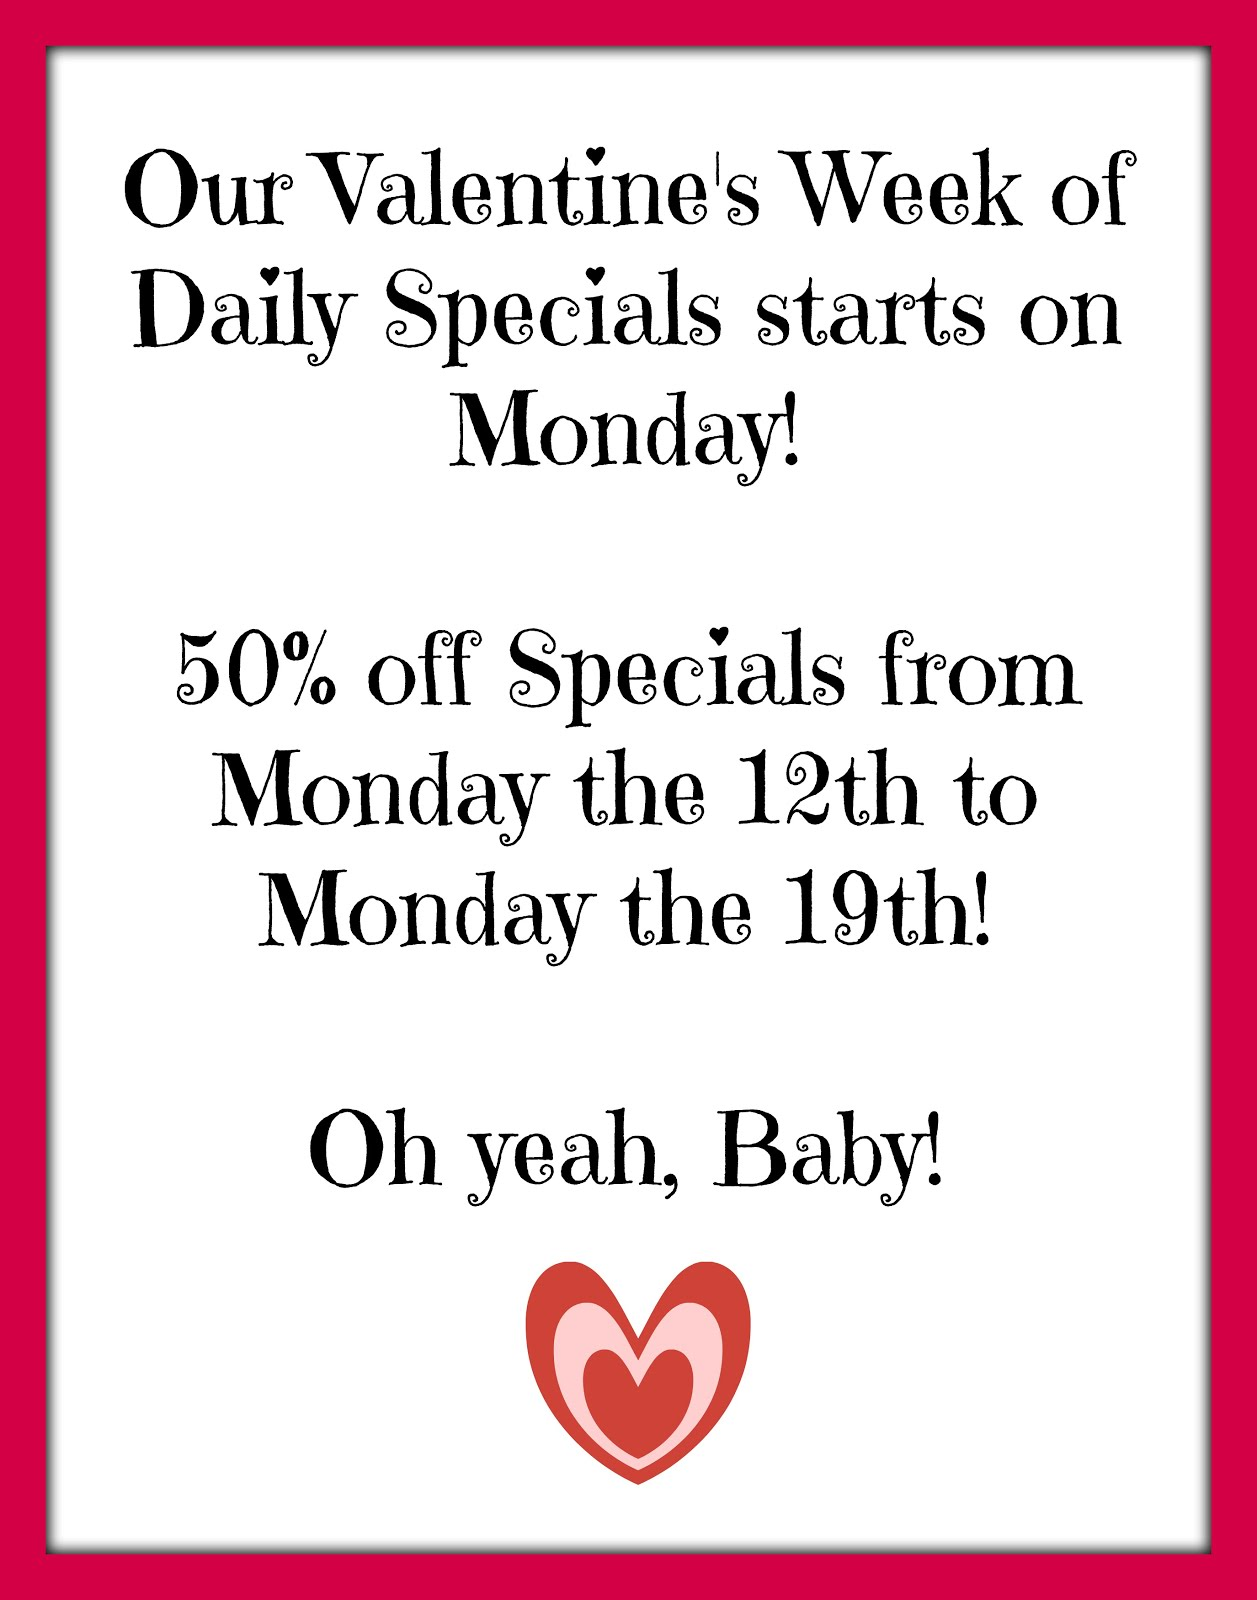 Daily Specials Week!